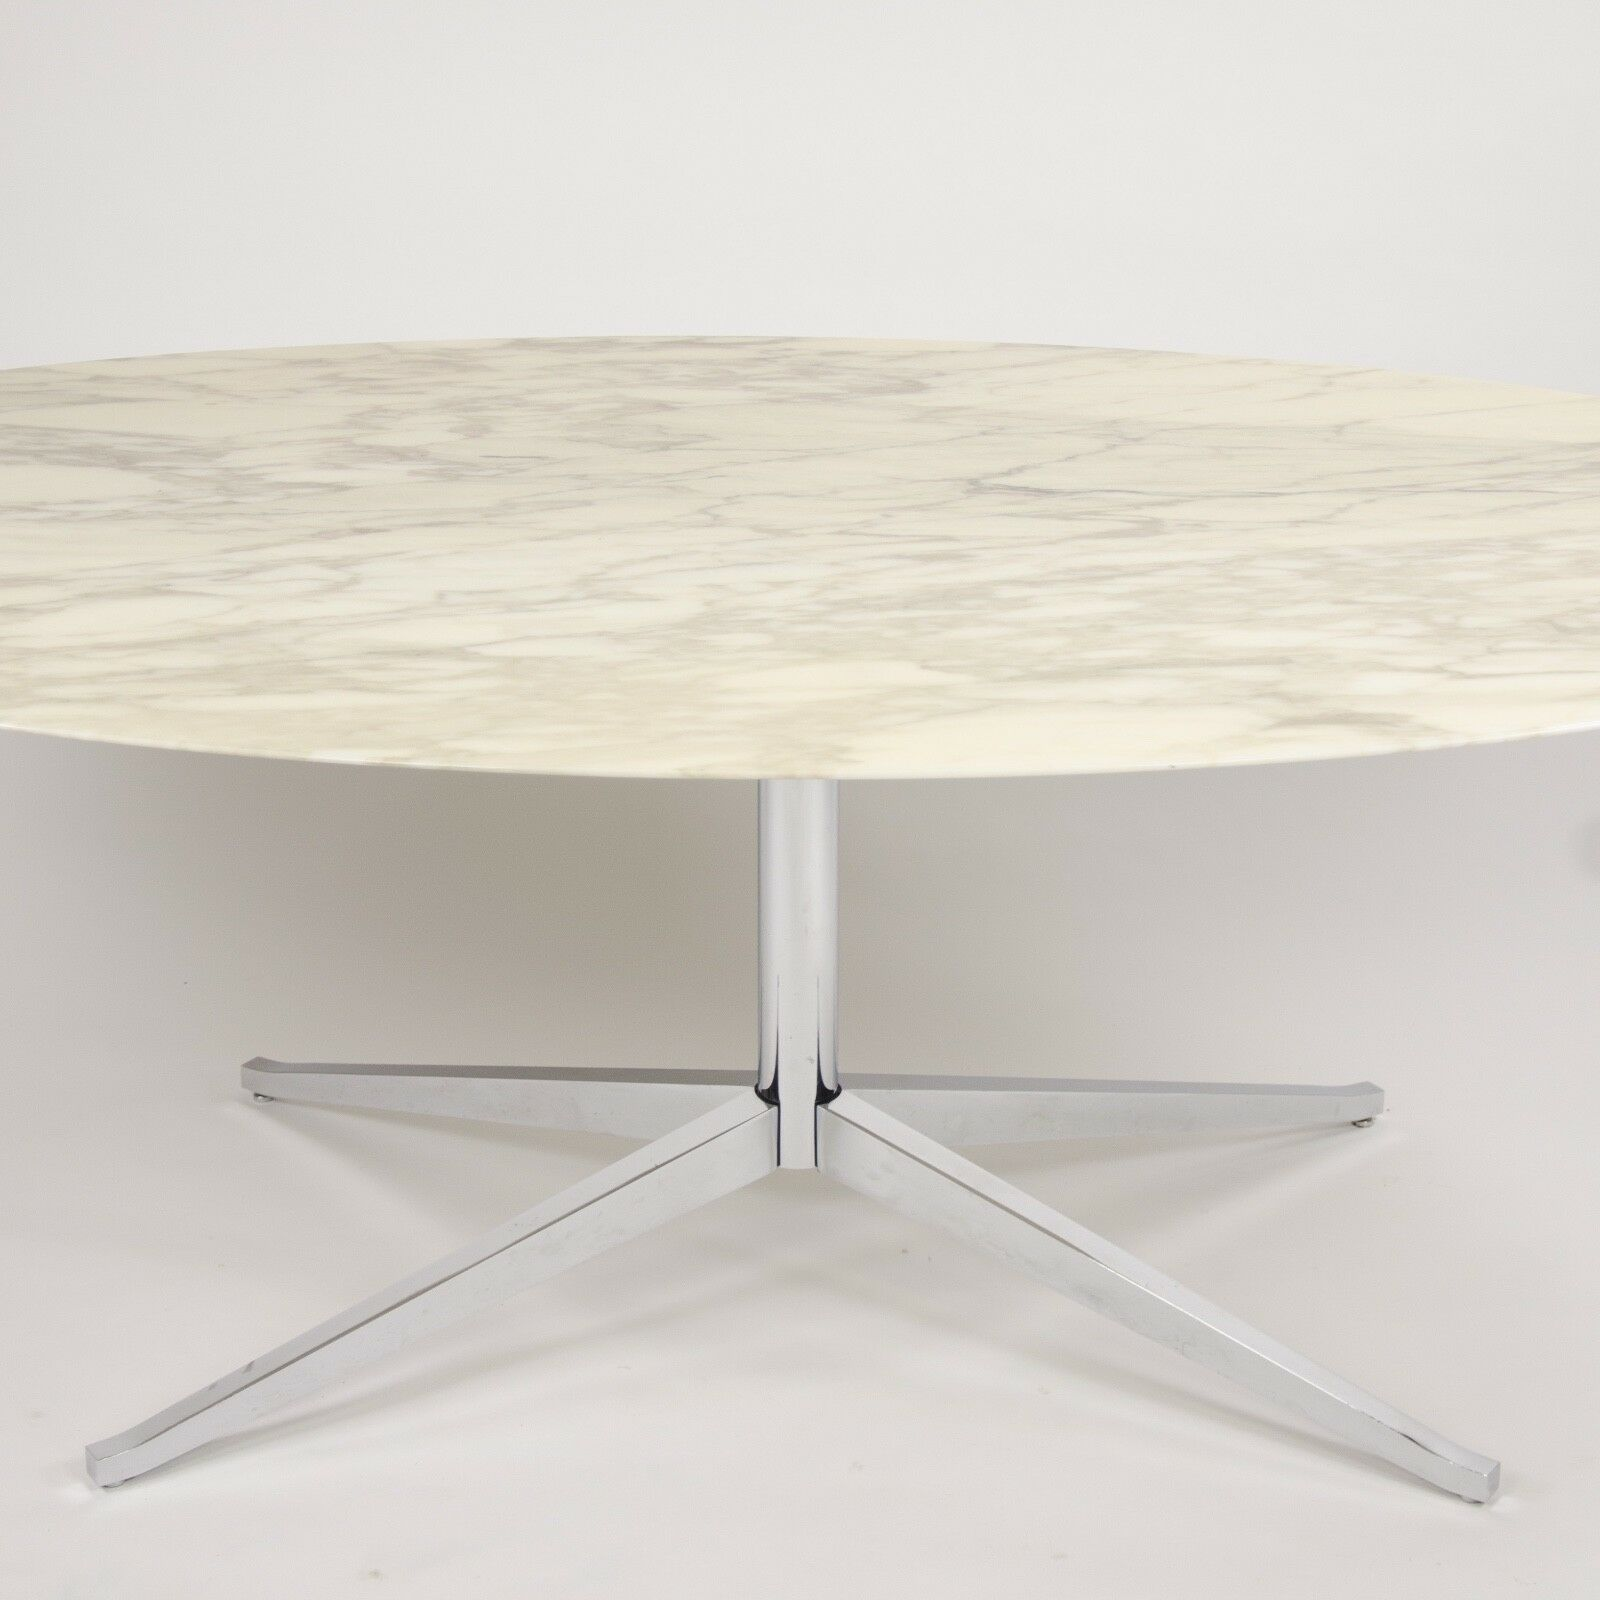 Knoll Table Details About 2009 Florence Knoll 78in Calacatta Marble Dining Conference Table Eames Saarinen